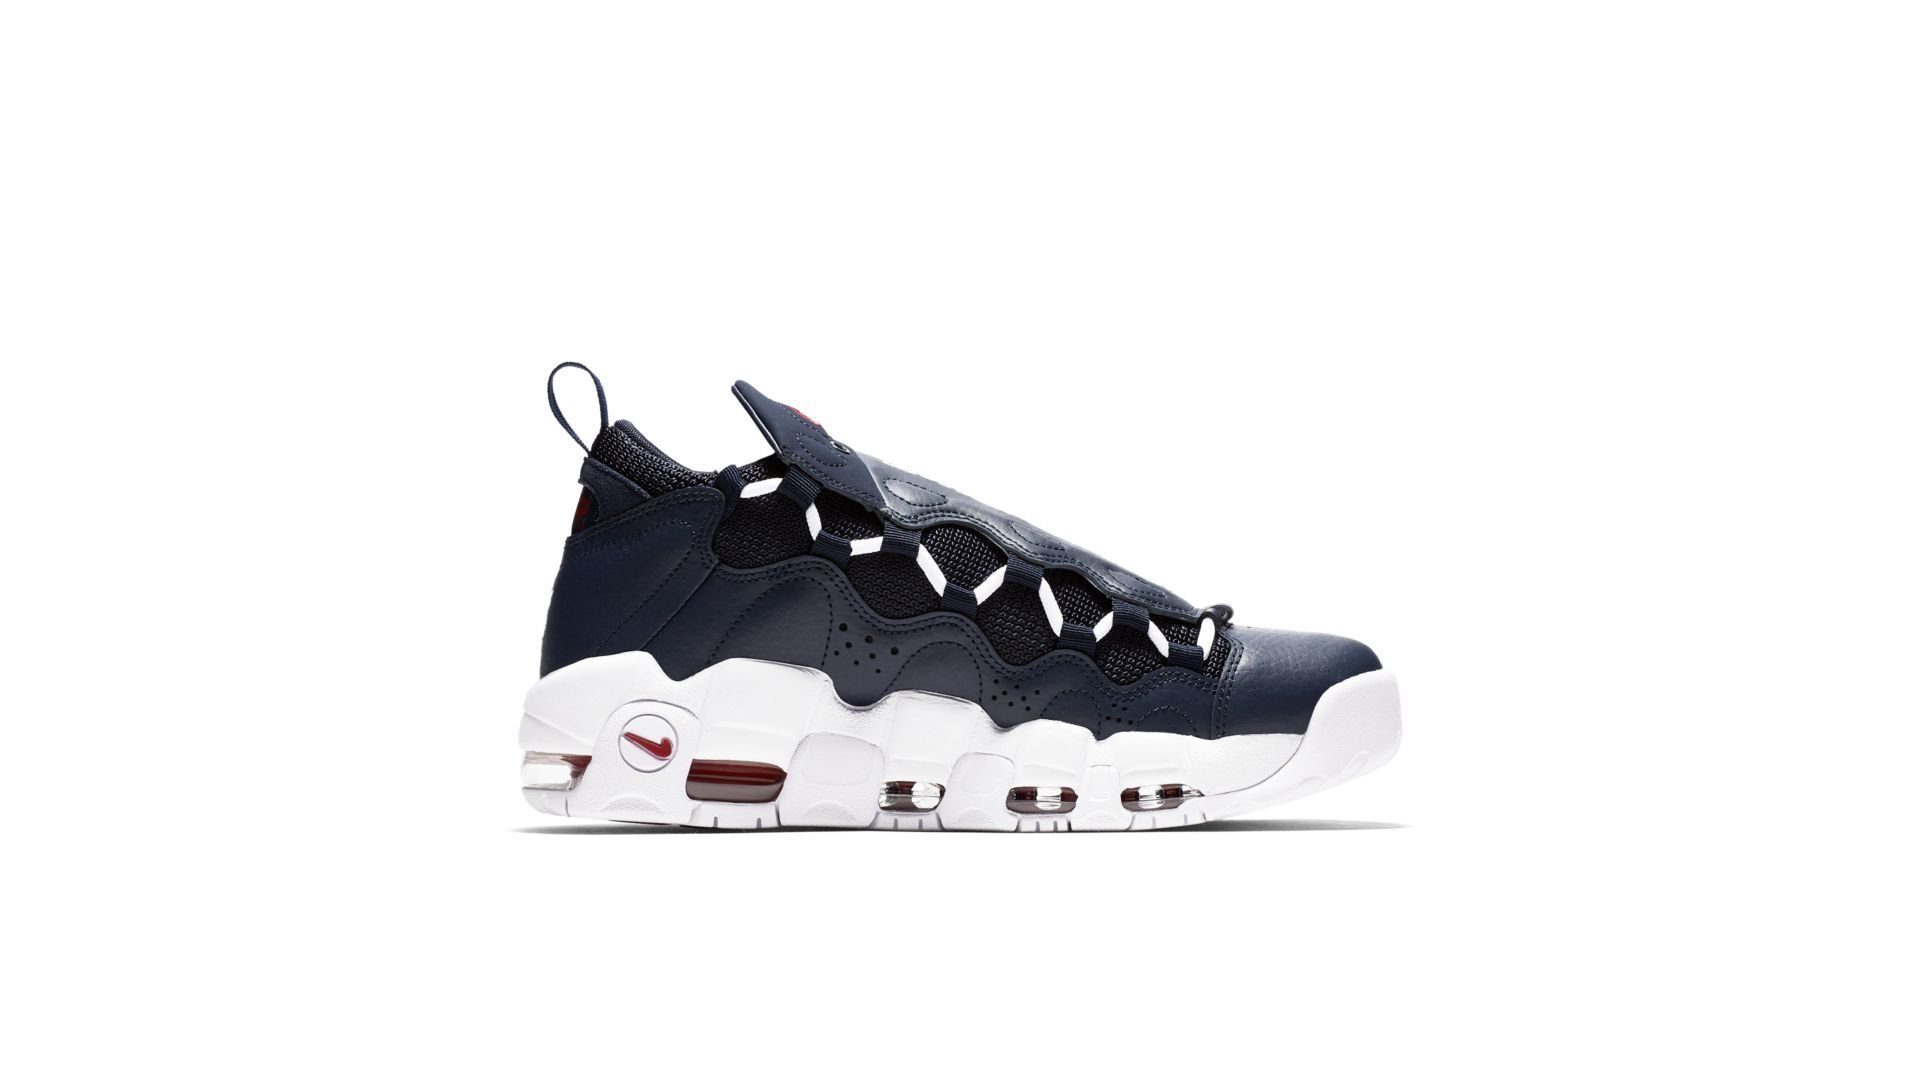 Nike Air More Money Obsidian (AJ2998 400)